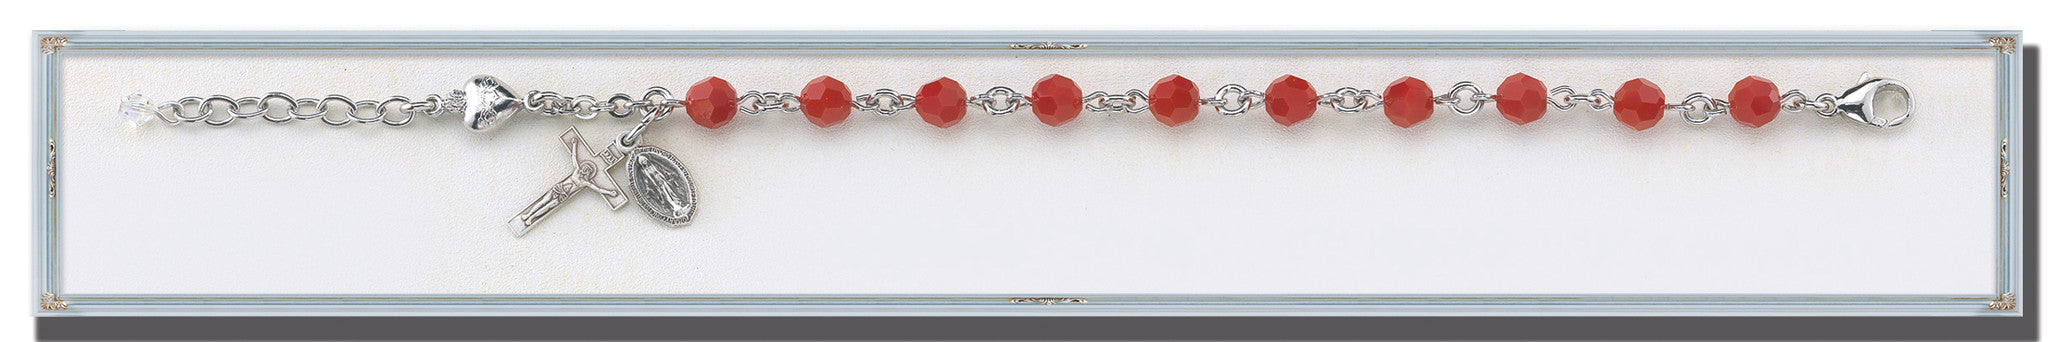 red_coral_crystal_sacred_hearts_bracelet